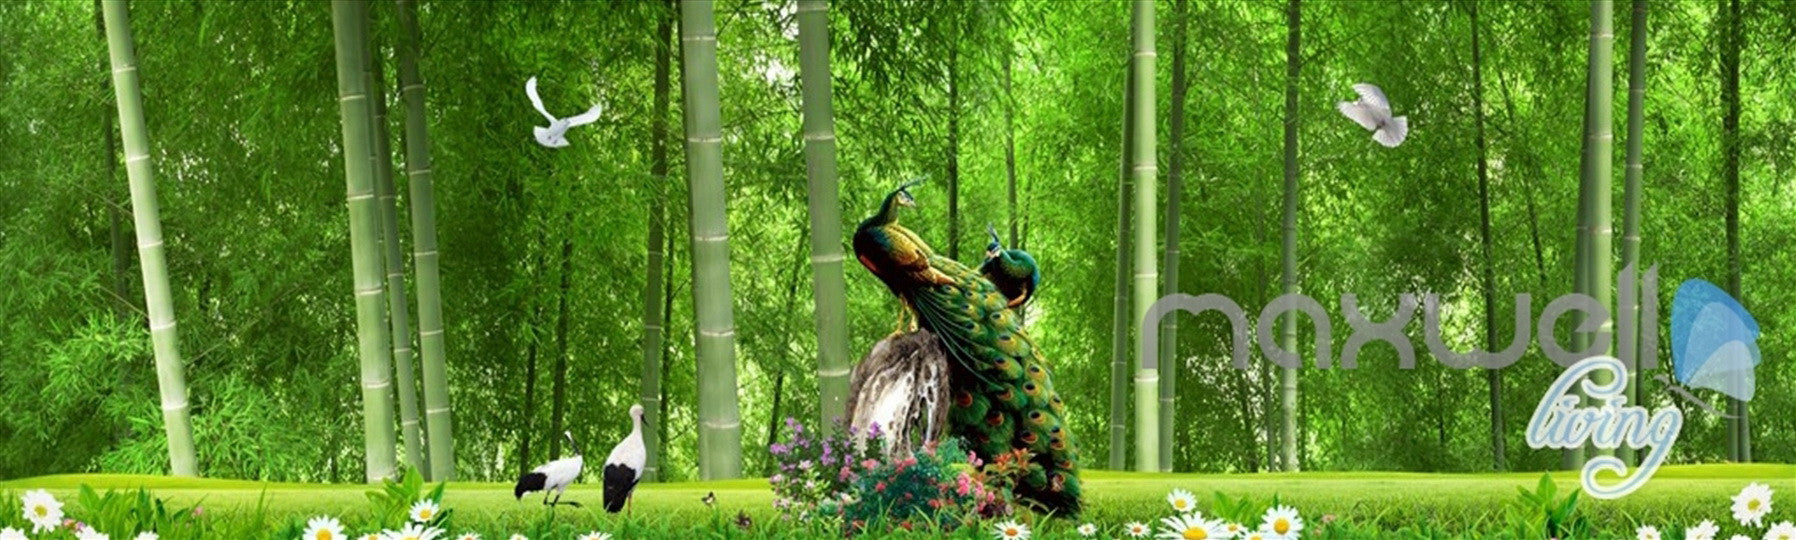 3D Bamboo Forest Peacock Entire Living Room Bedroom Wallpaper Wall Mural  Art Prints IDCQW 000291 Part 75